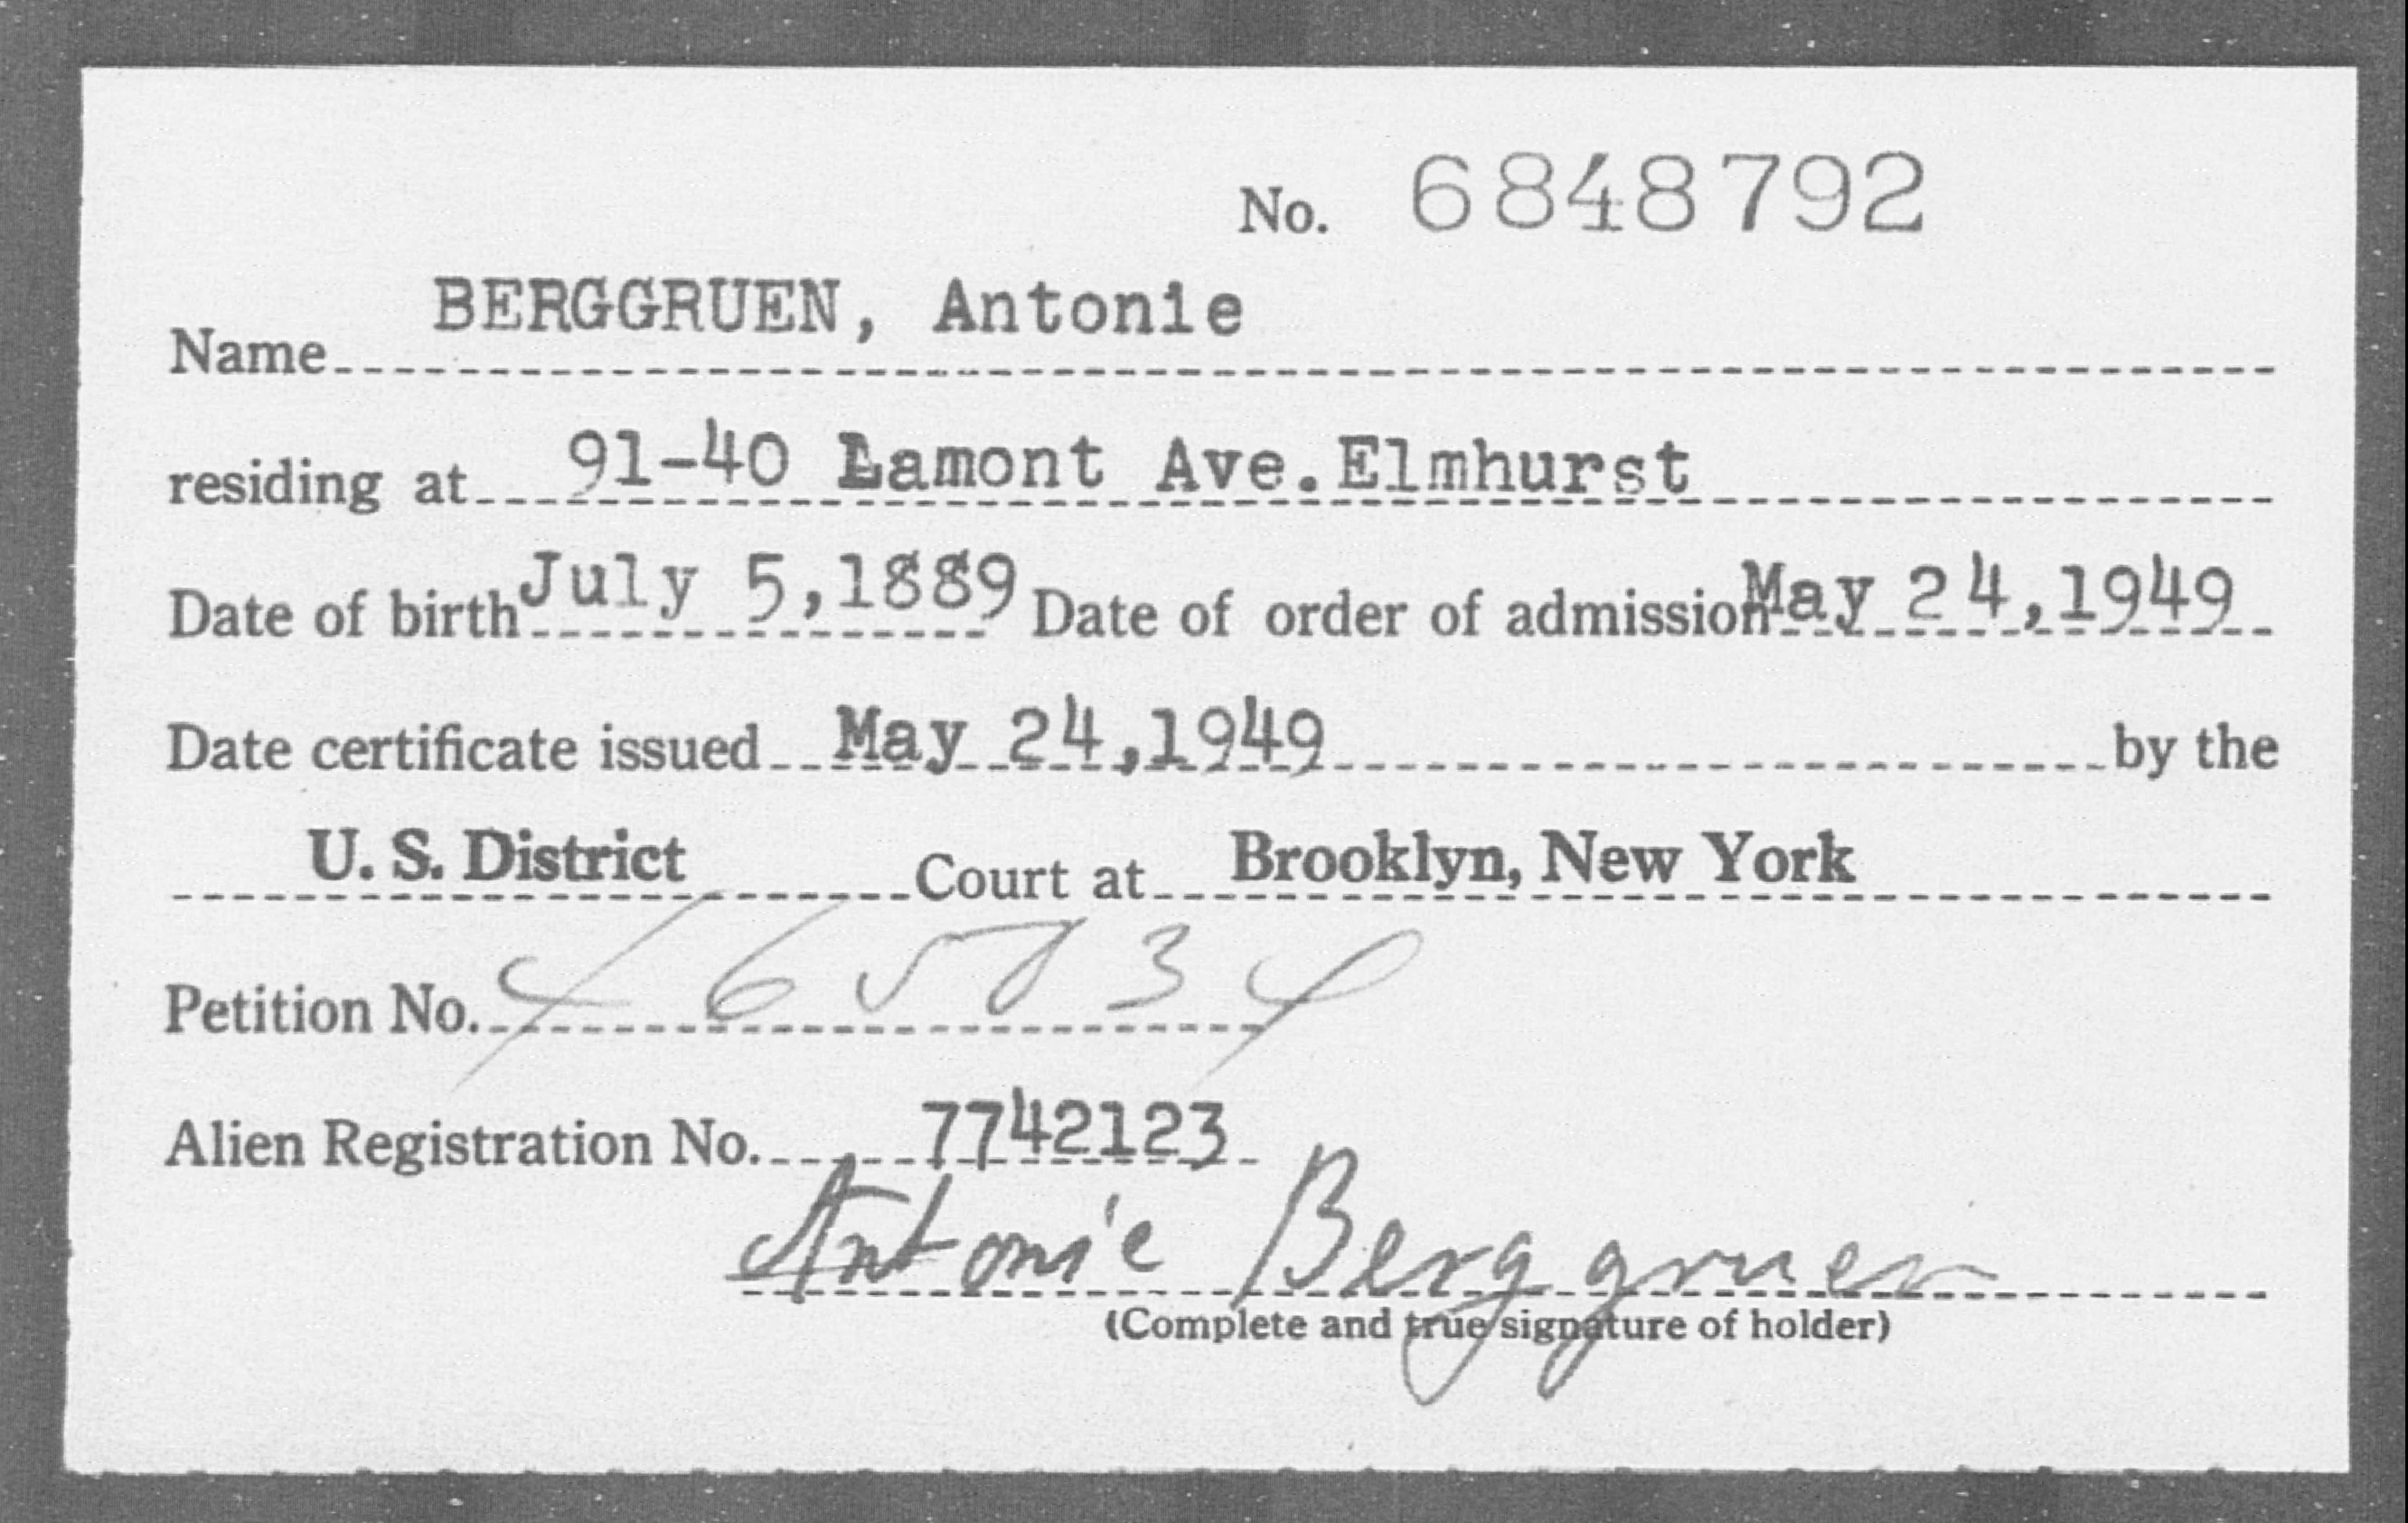 BERGGRUEN, Antonie - Born: 1889, Naturalized: 1949